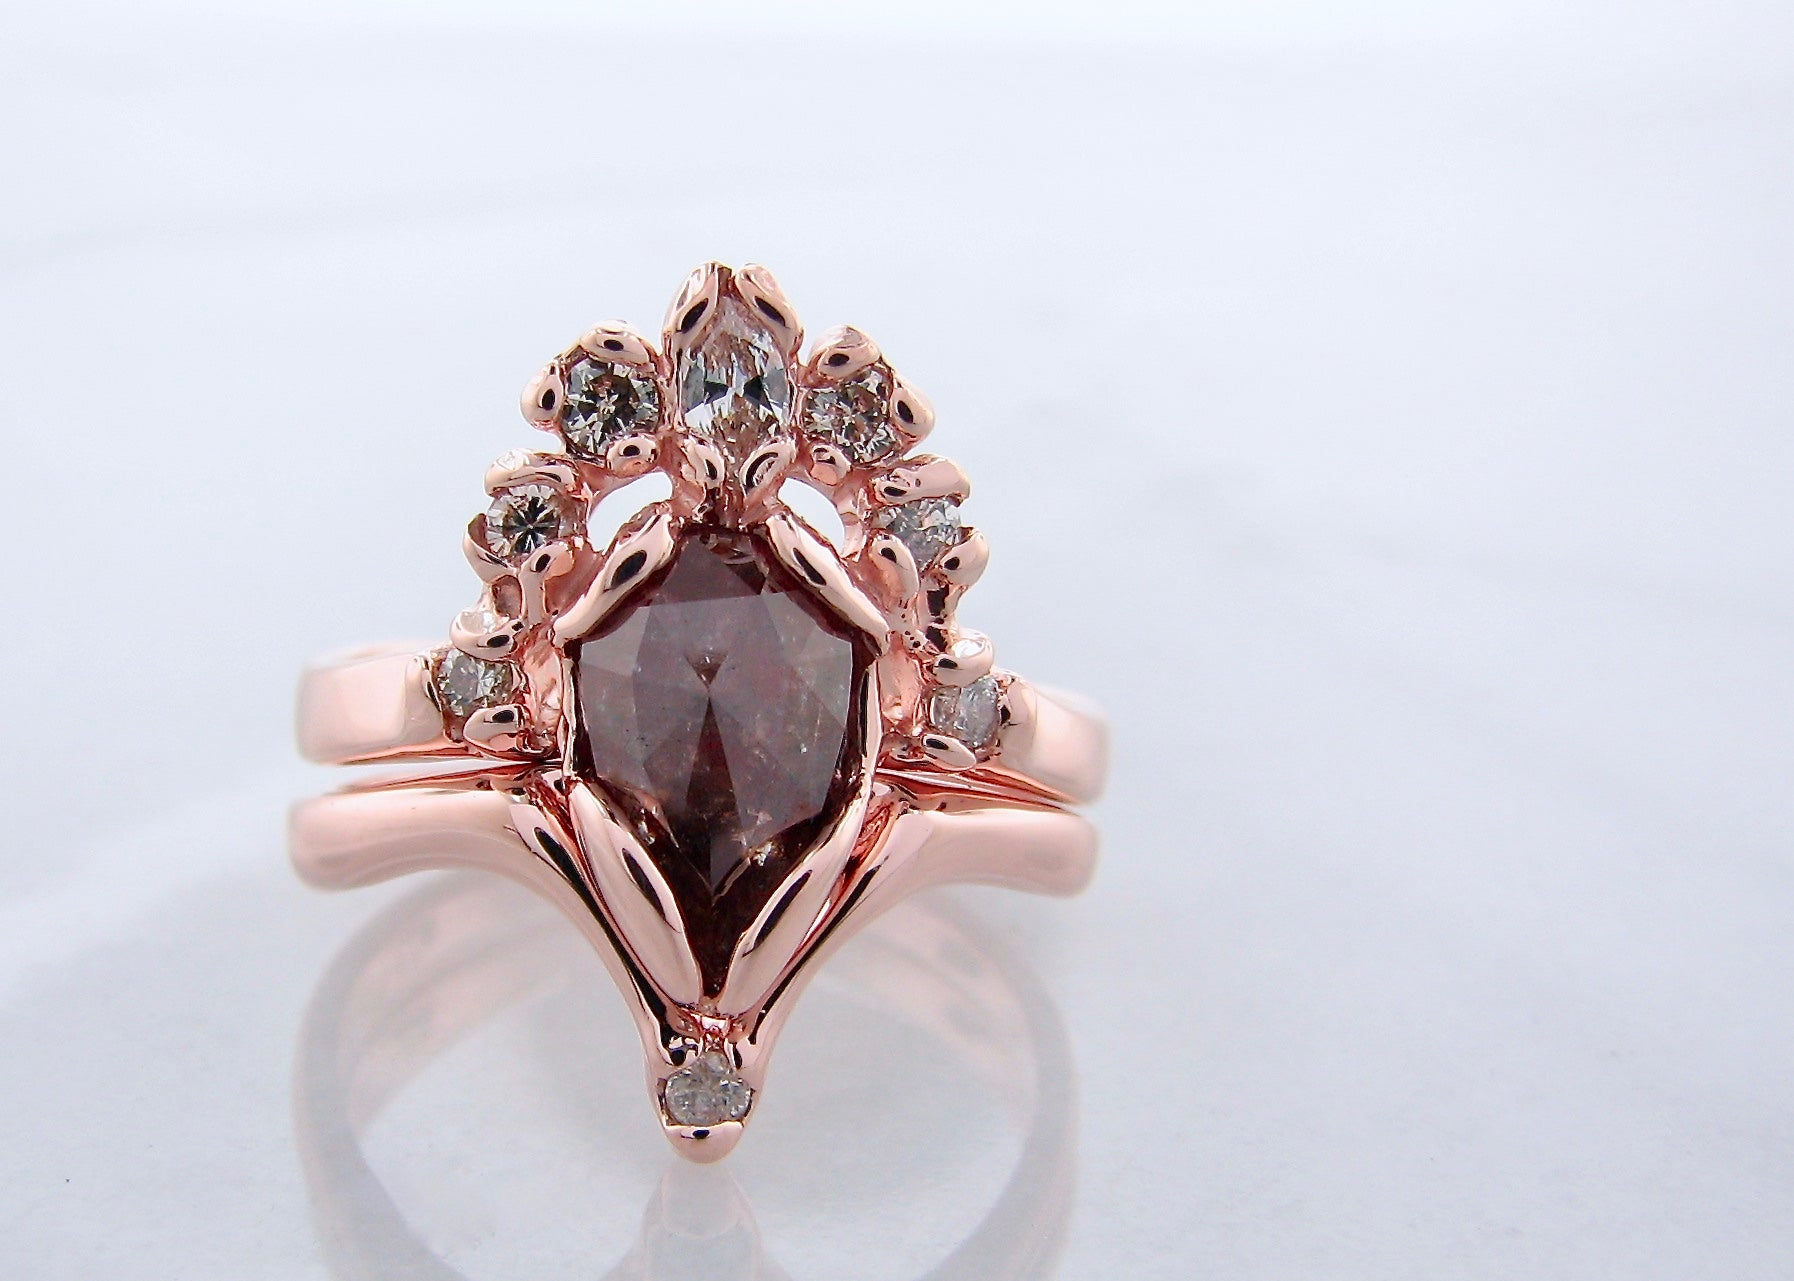 Rose Gold Wedding Ring.Cognac Rose Cut Rustic Diamond Rose Gold Wedding Ring Set Coquette